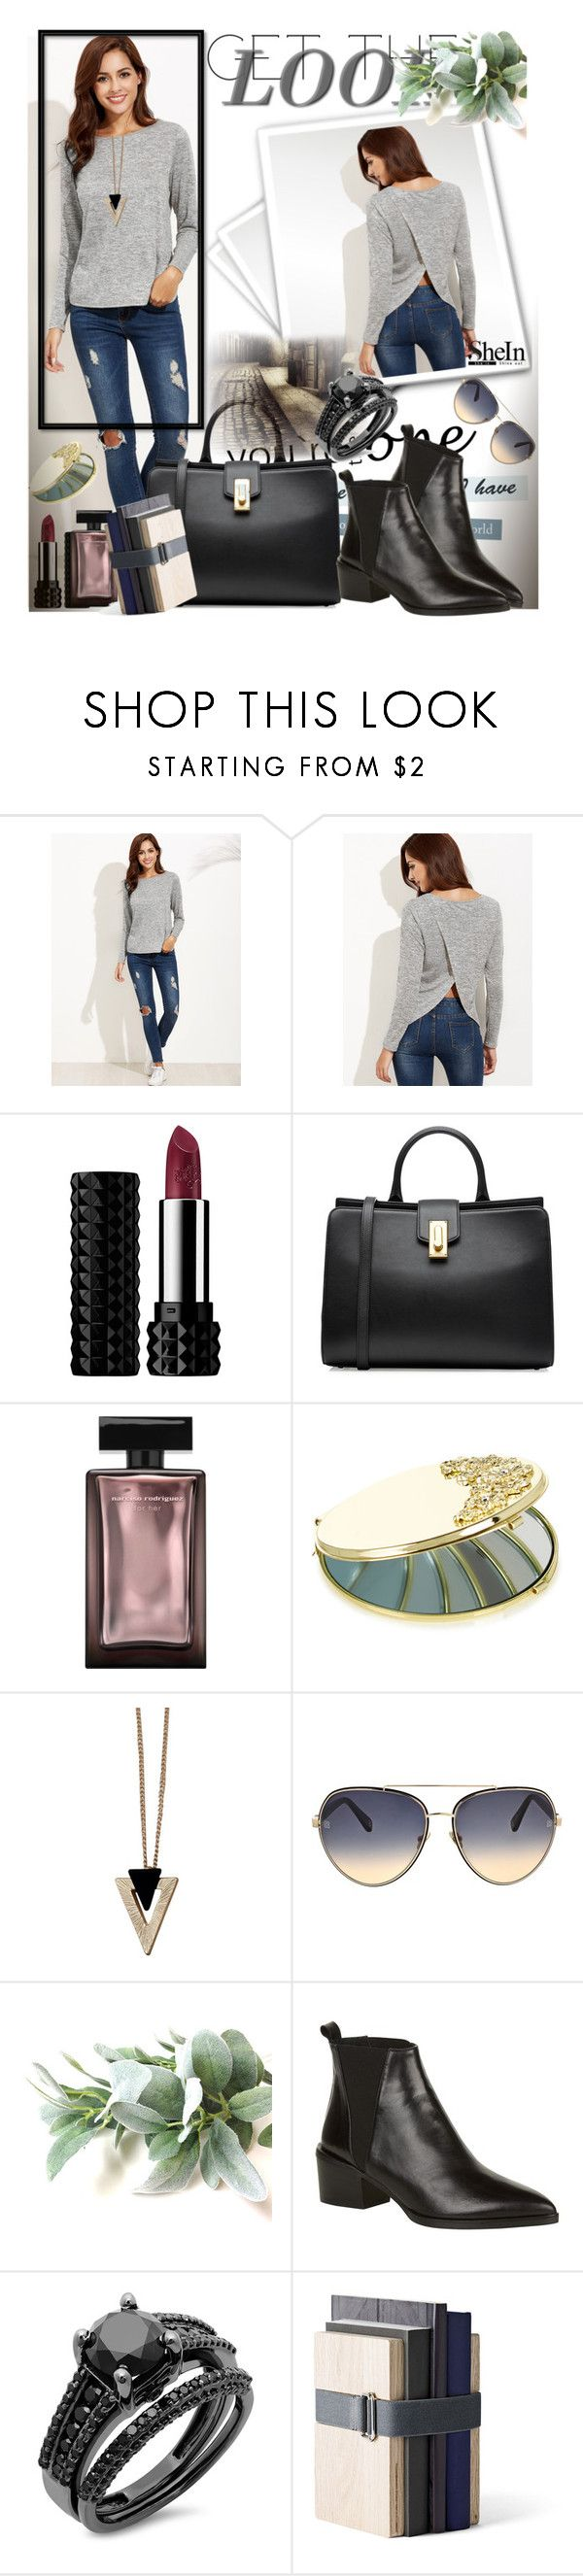 """""""T-shirt from Shein"""" by manuela-cdl ❤ liked on Polyvore featuring Kat Von D, Marc Jacobs, Monsoon, Chicnova Fashion, Oscar de la Renta, Whistles and Menu"""